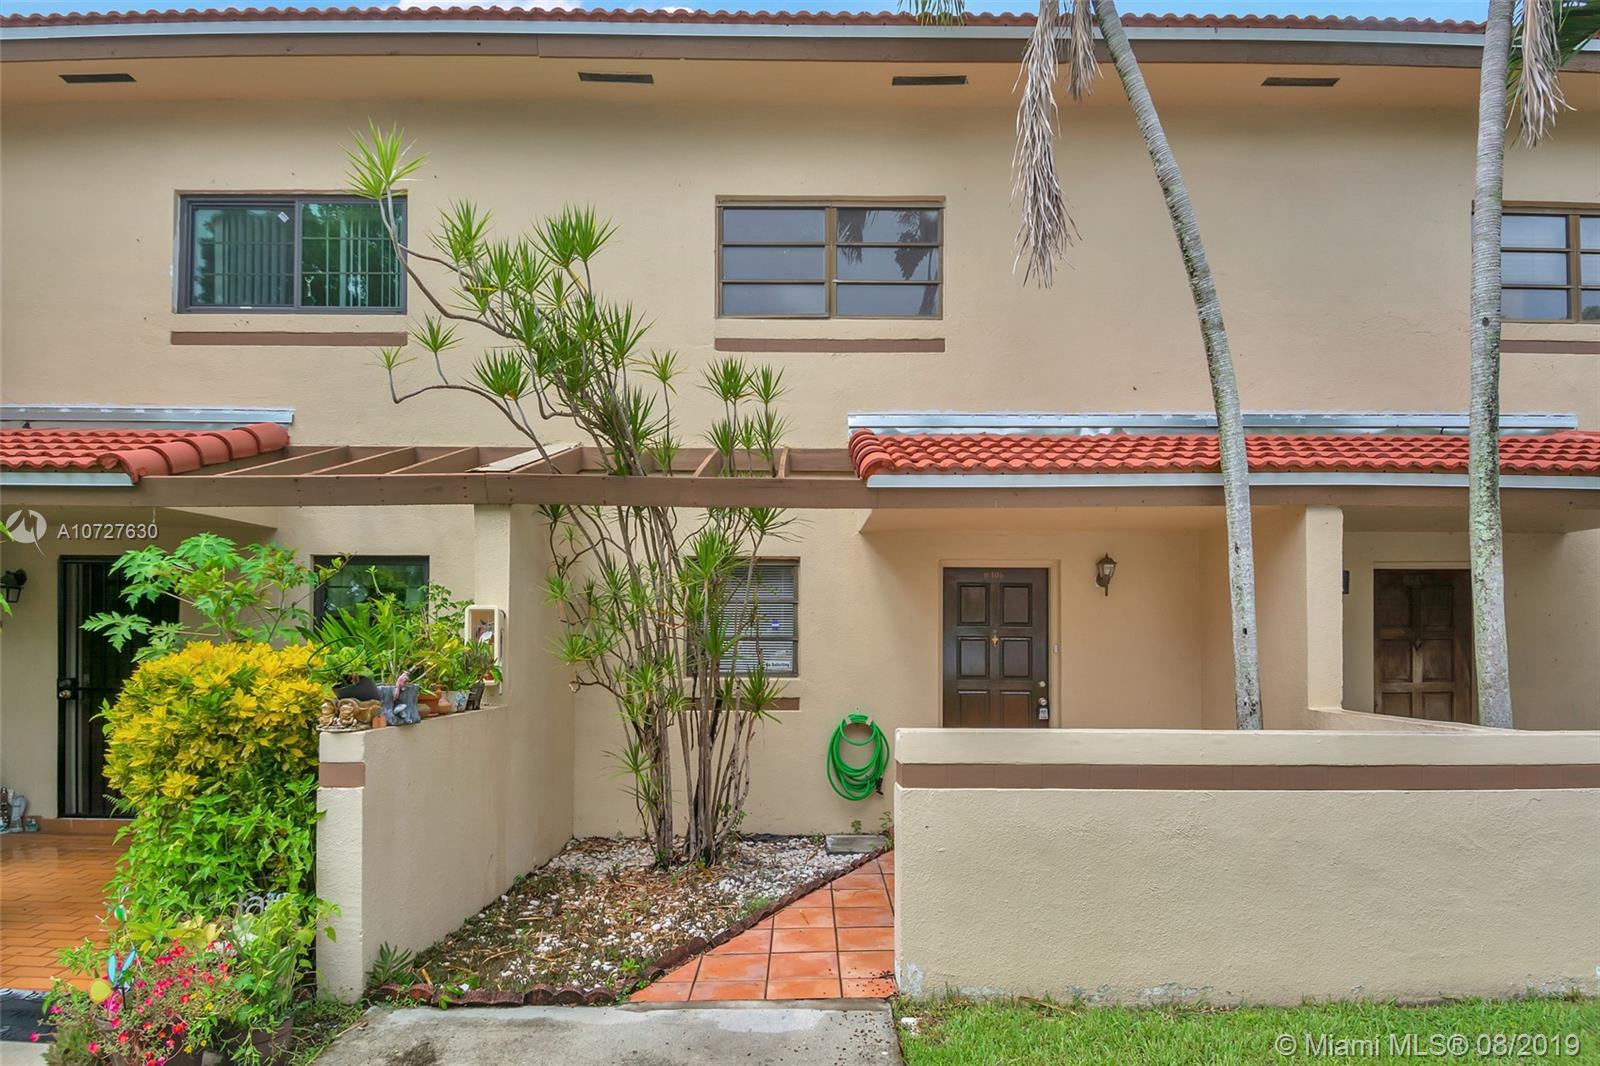 6236 SW 136th Ct, Kendall in Miami-dade County County, FL 33183 Home for Sale